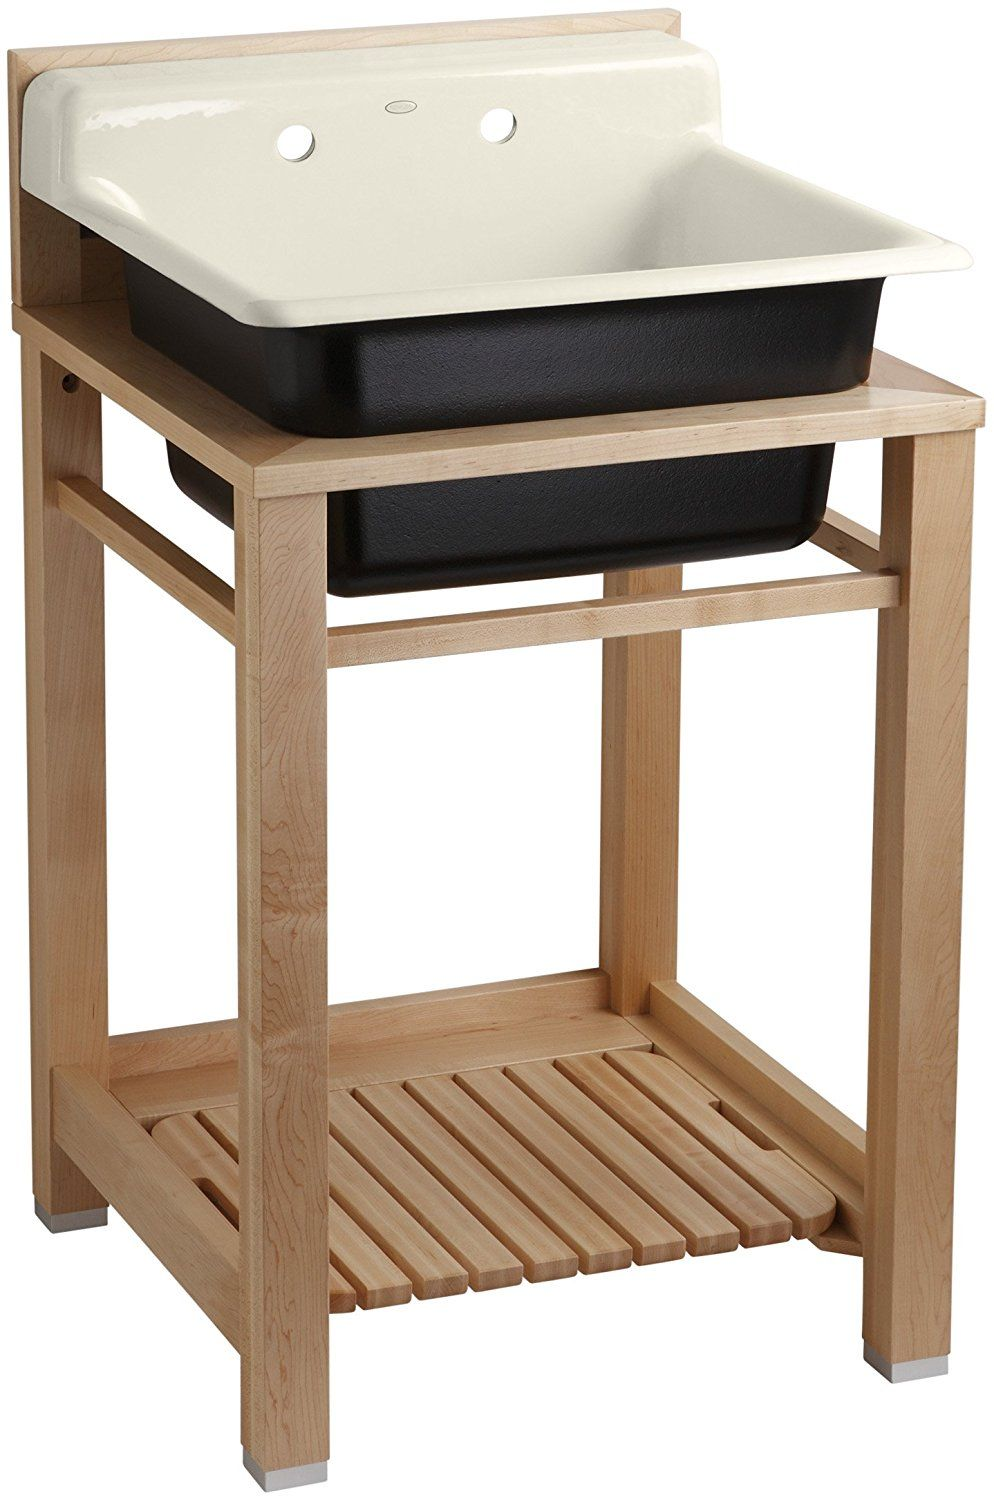 Free Room Design Tool: Kohler K-6608-2P-47 Bayview Wood Stand Utility Sink With